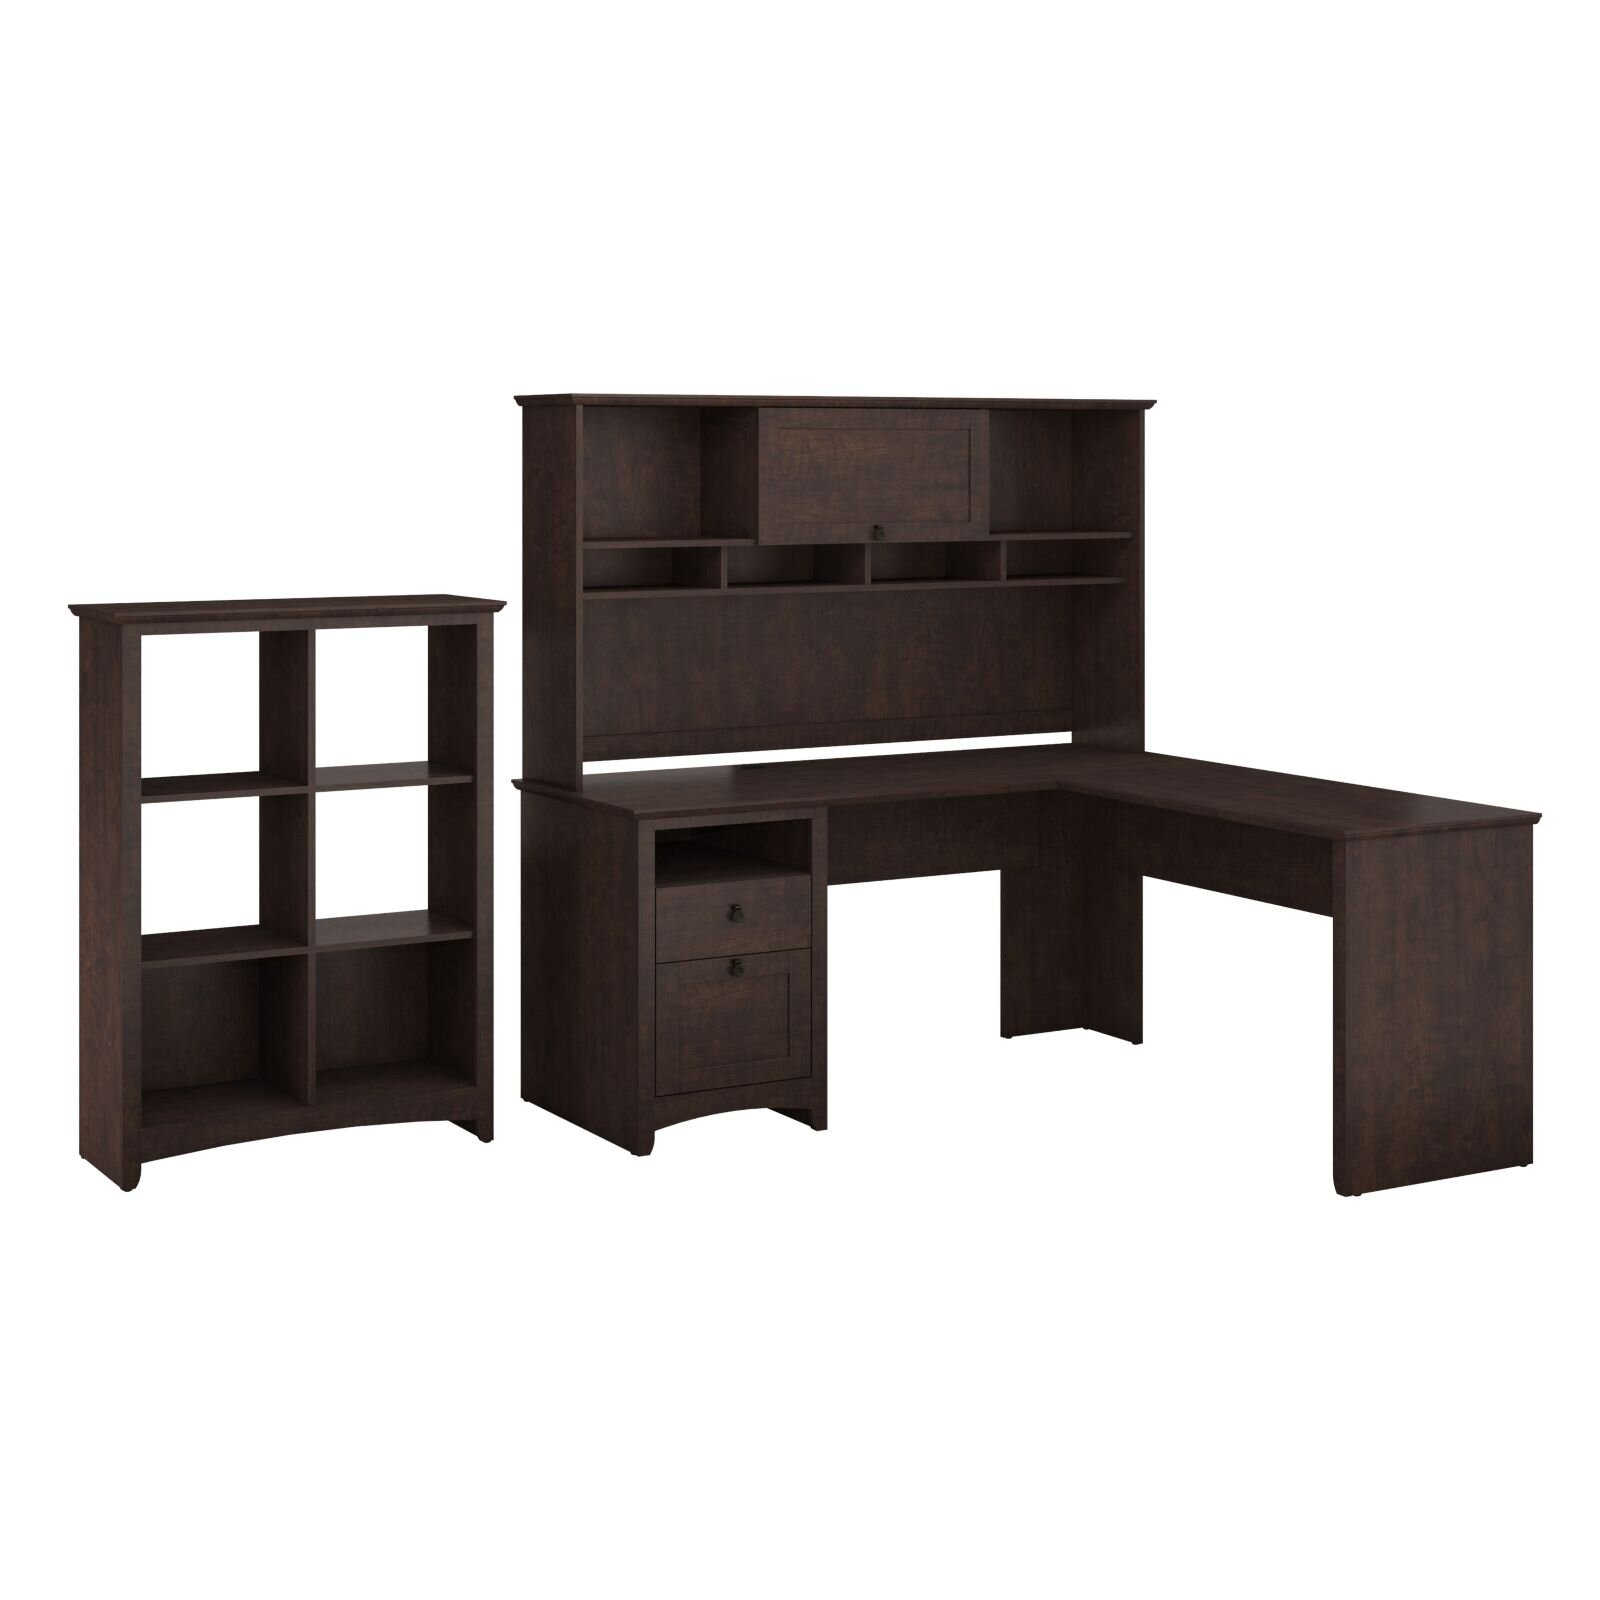 Executive Corner Desk With Hutch & 6 Slot Bookcase & Reviews Wa . Full resolution‎  image, nominally Width 1600 Height 1600 pixels, image with #2F2521.